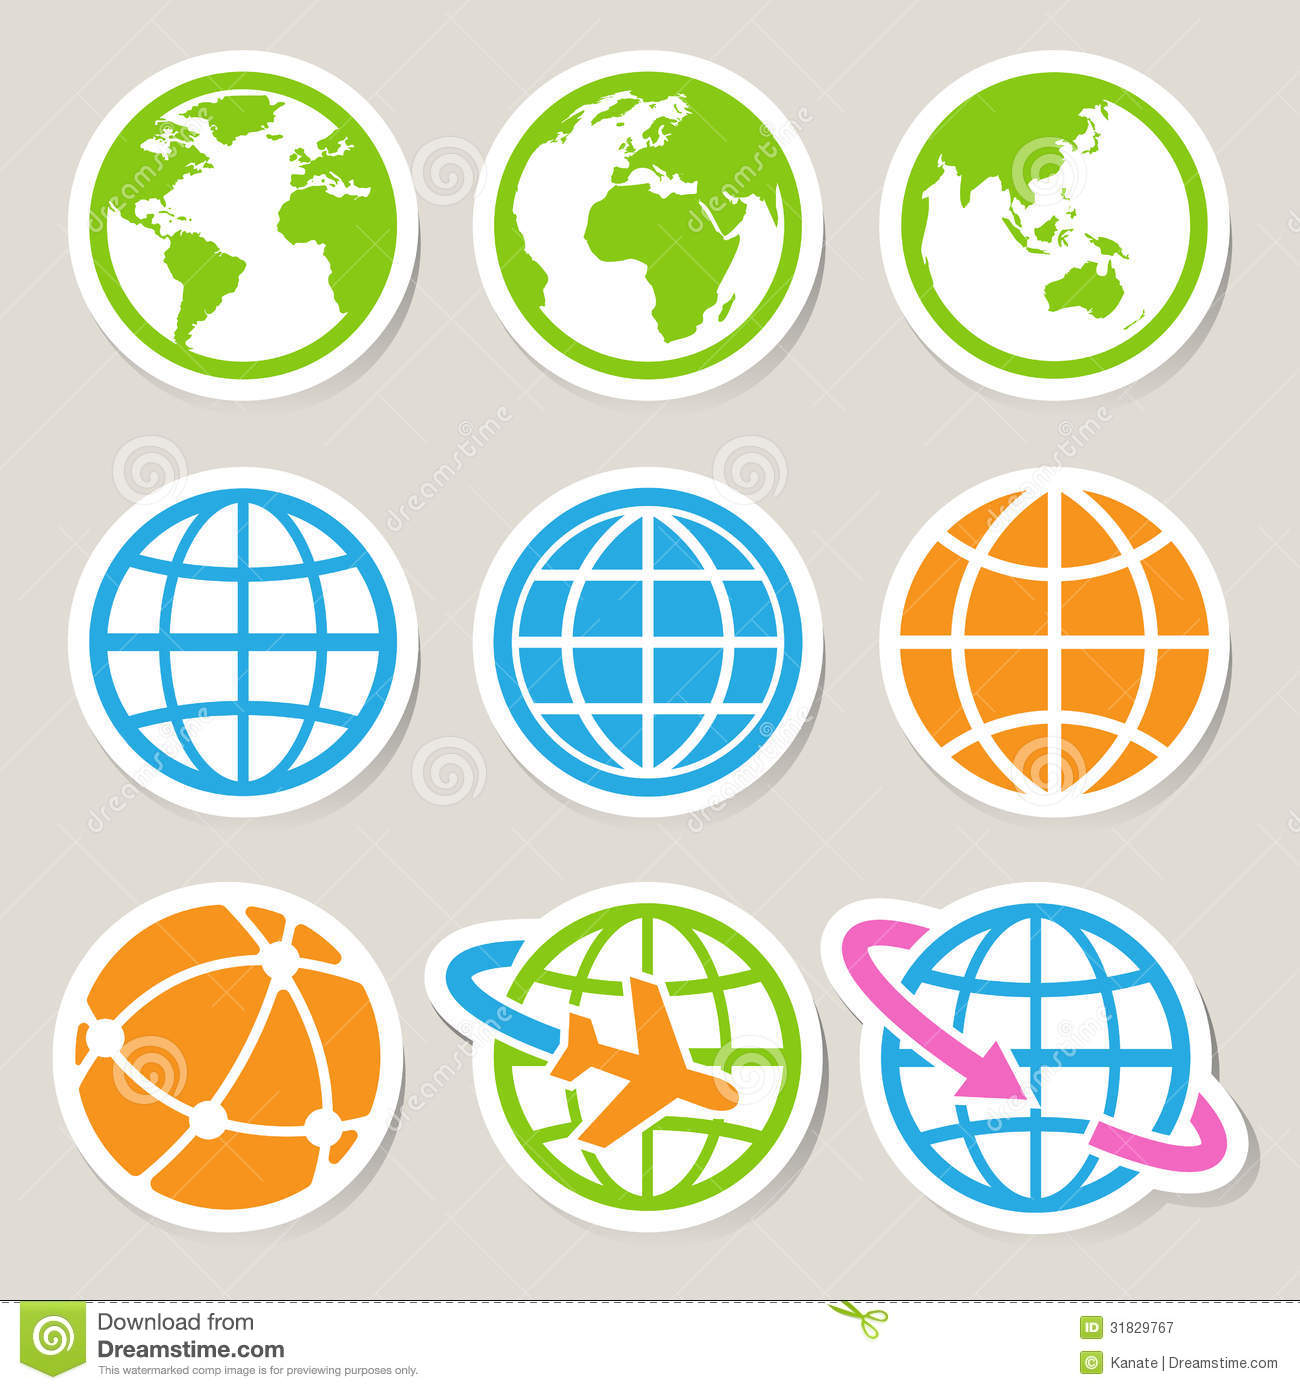 Google Earth Icon Set